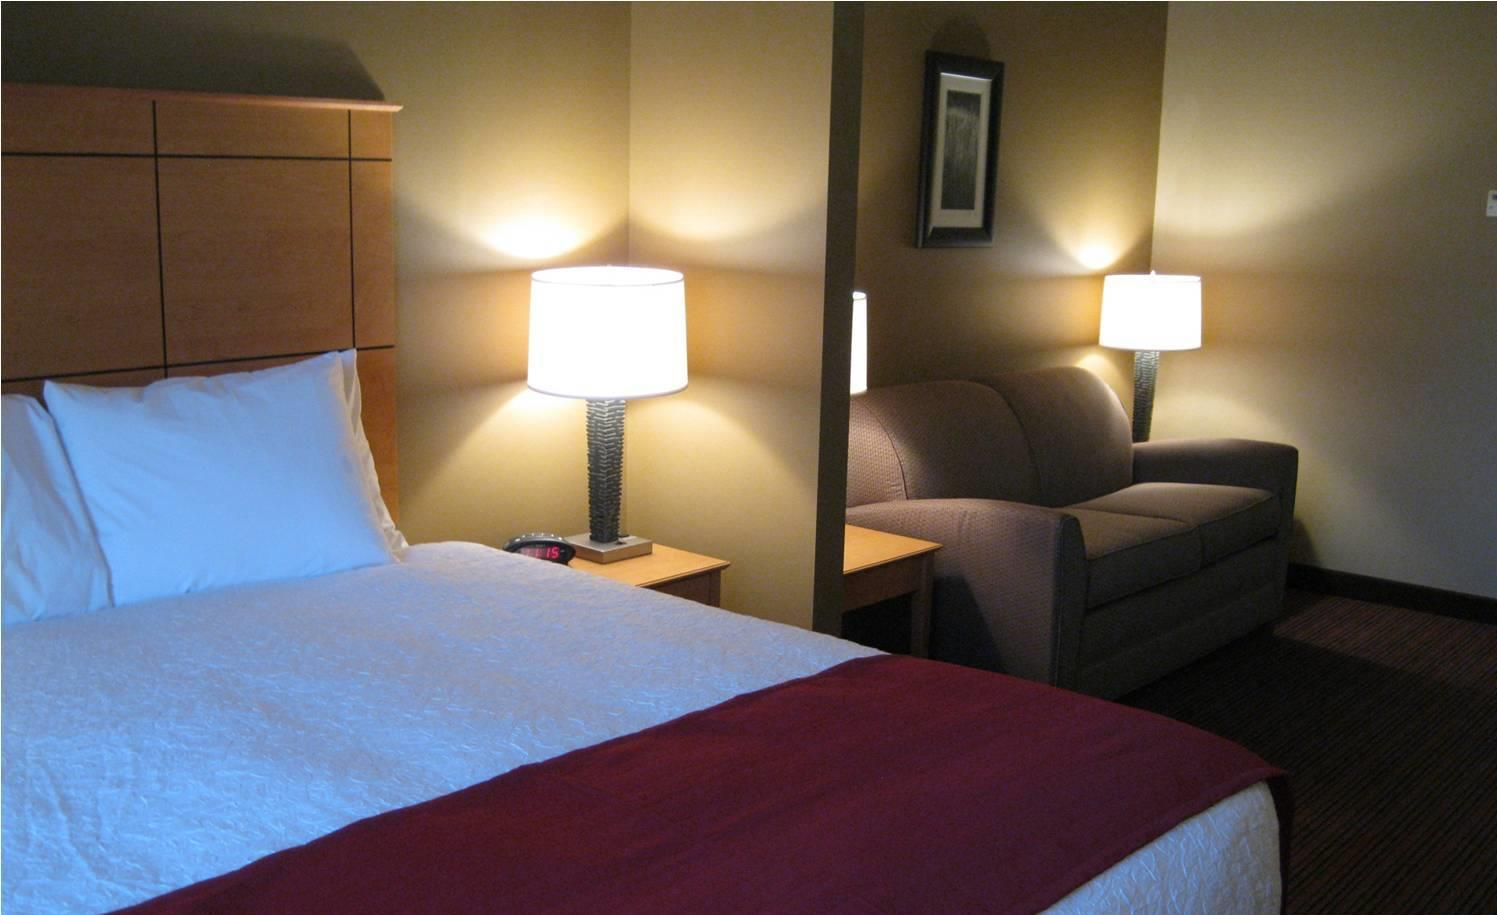 Best of fairview mt things to do nearby for Richland motor inn sidney mt